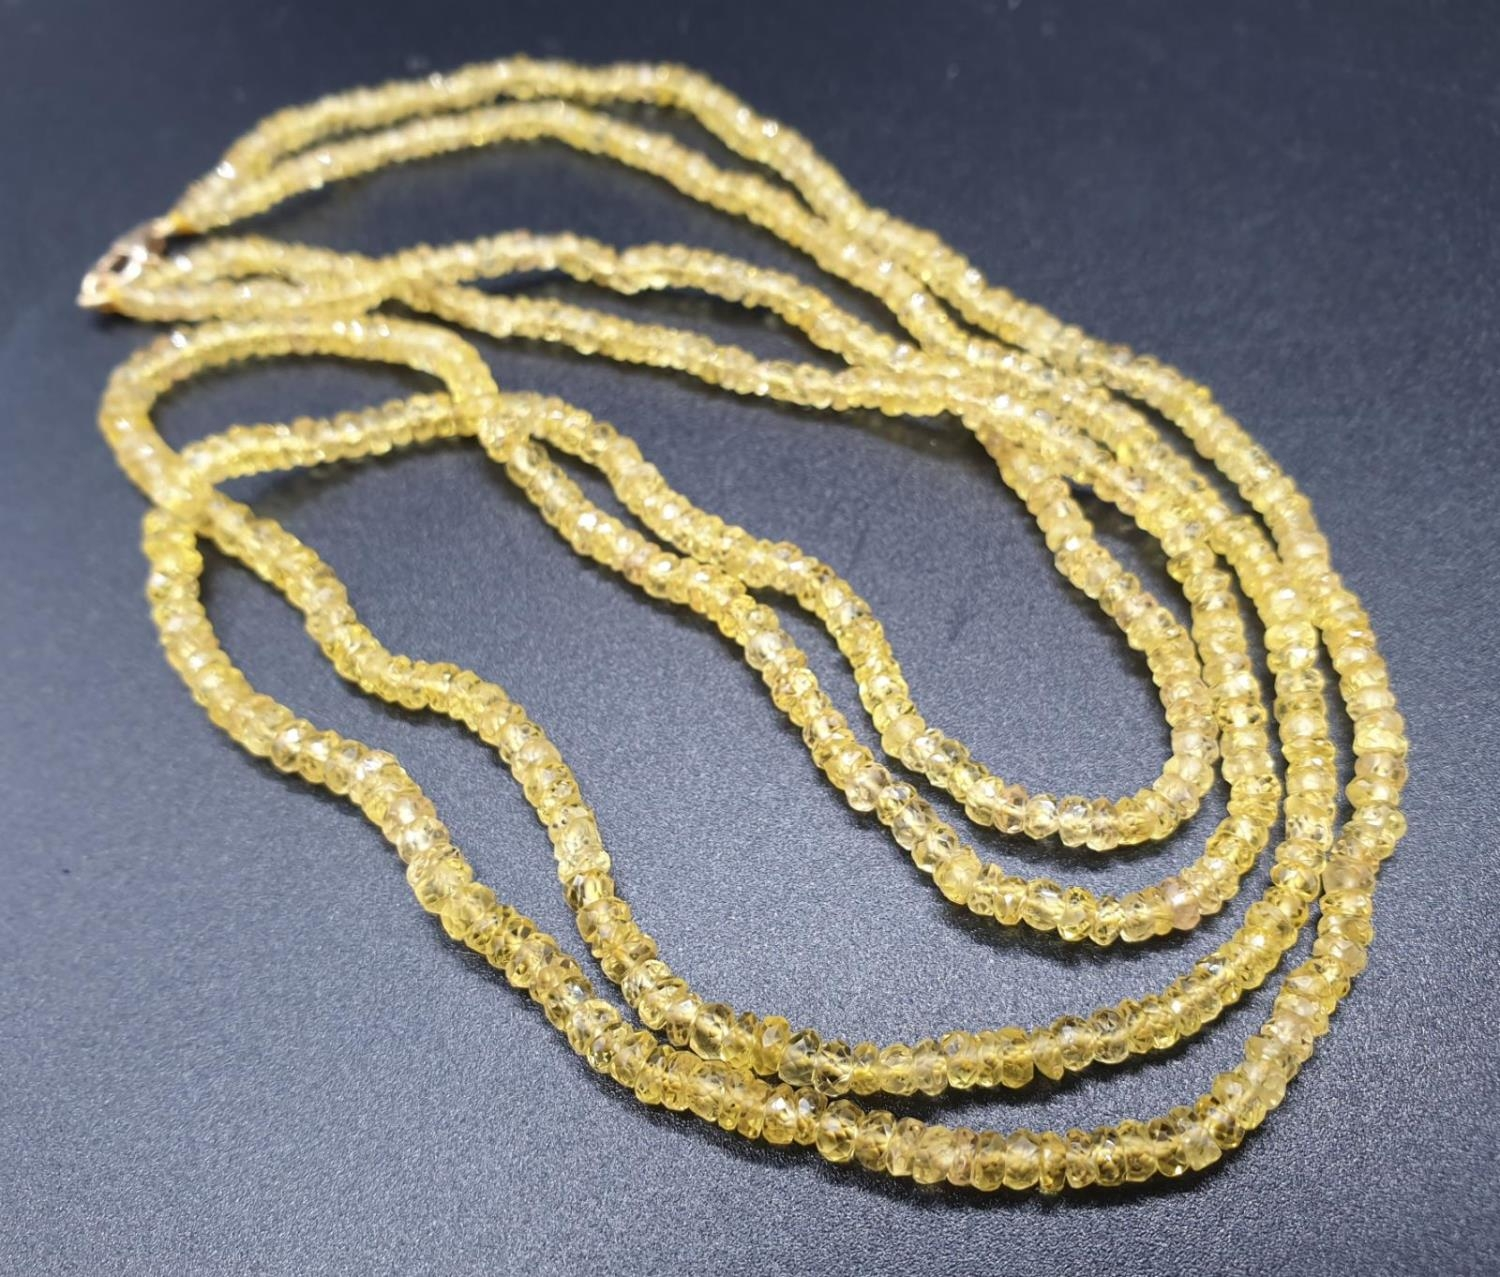 97.50 Cts Natural Yellow Sapphire gemstone beaded necklace.